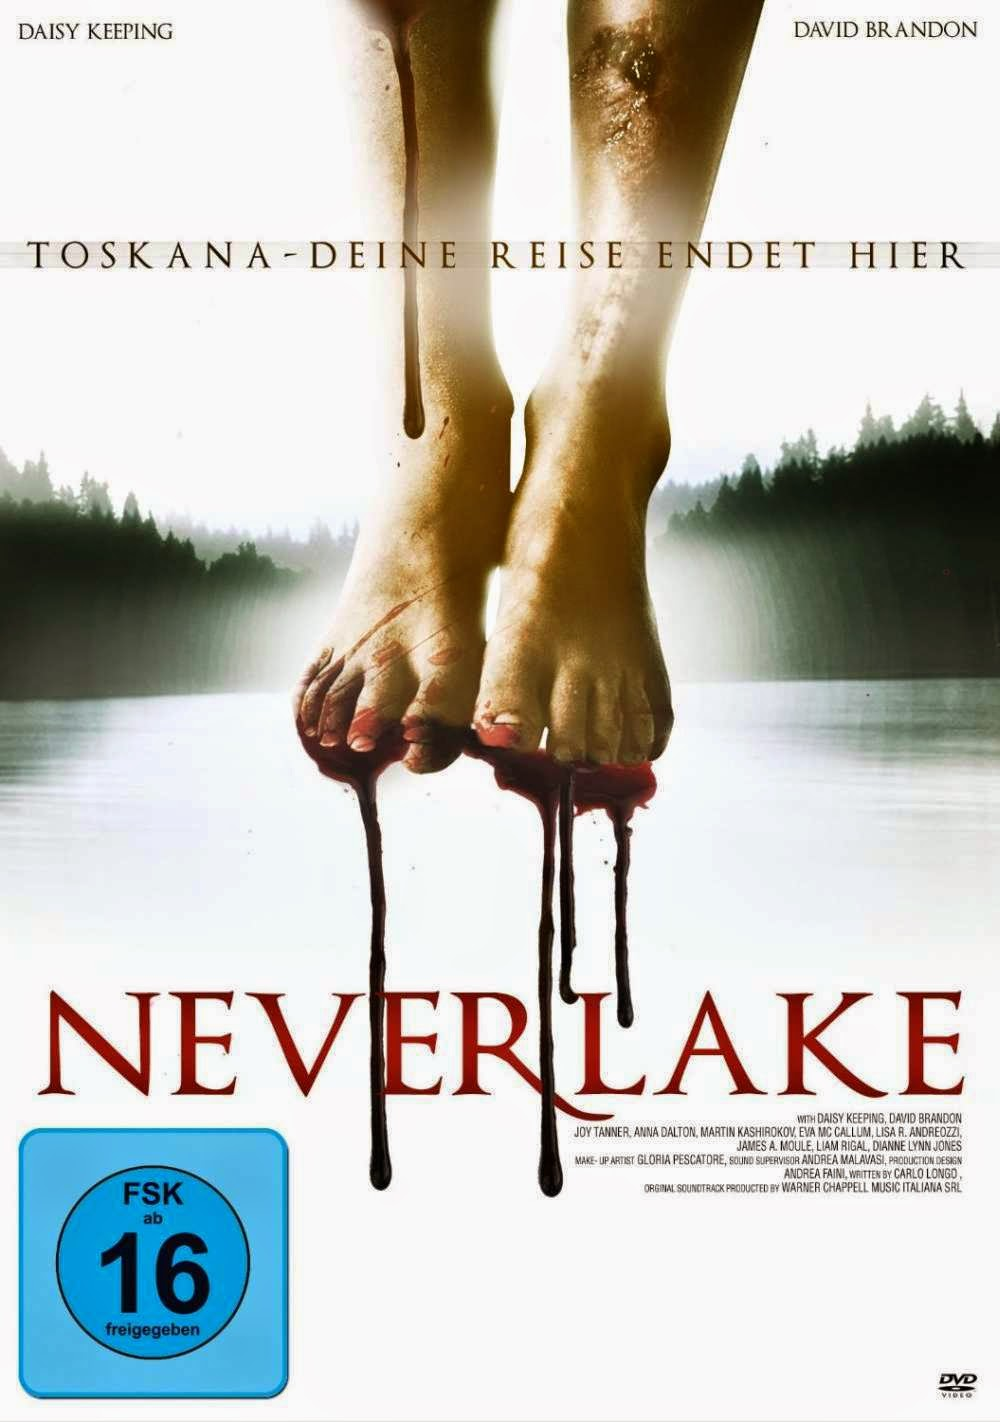 Assistir Filme Neverlake Legendado 2013